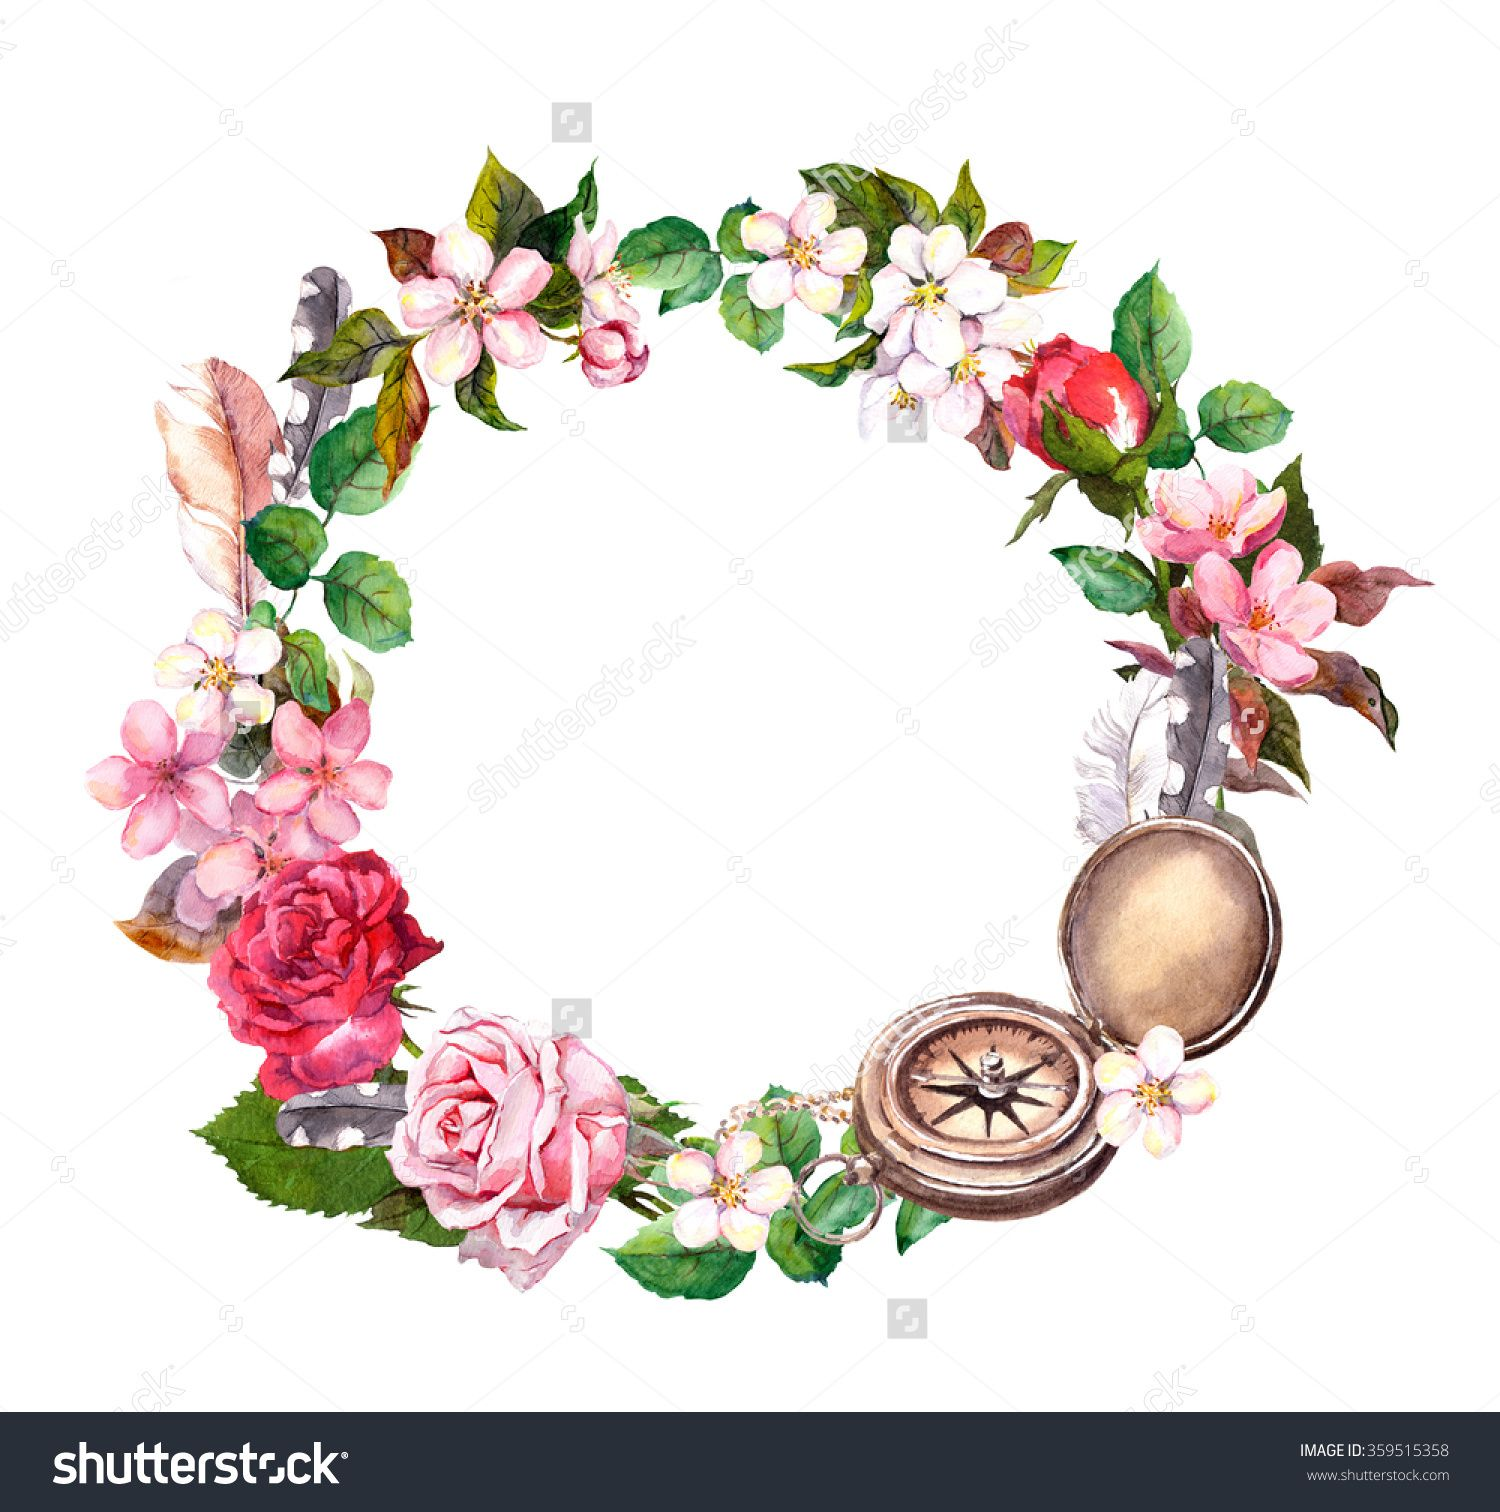 Vintage Compass Flowers And Feathers Travel Concept Wreath Watercolor Circle Frame Watercolor Circles Vintage Compass Wreath Watercolor